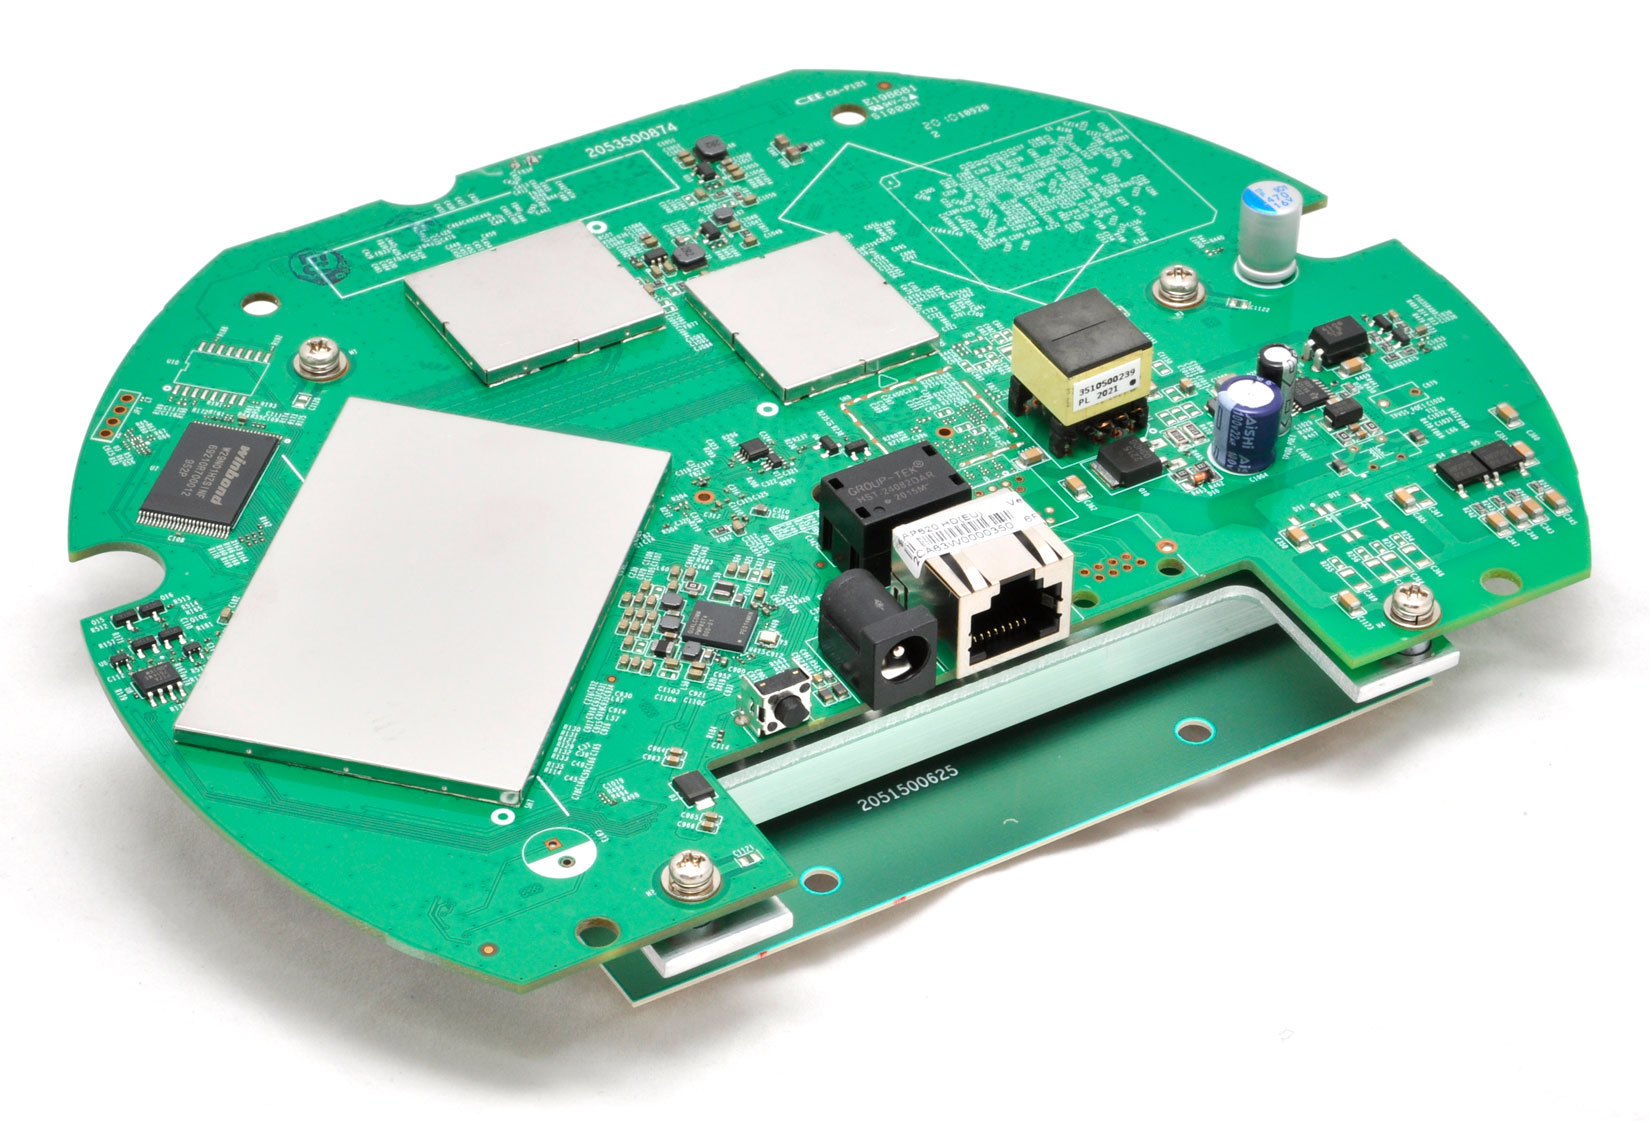 Motherboard of access point